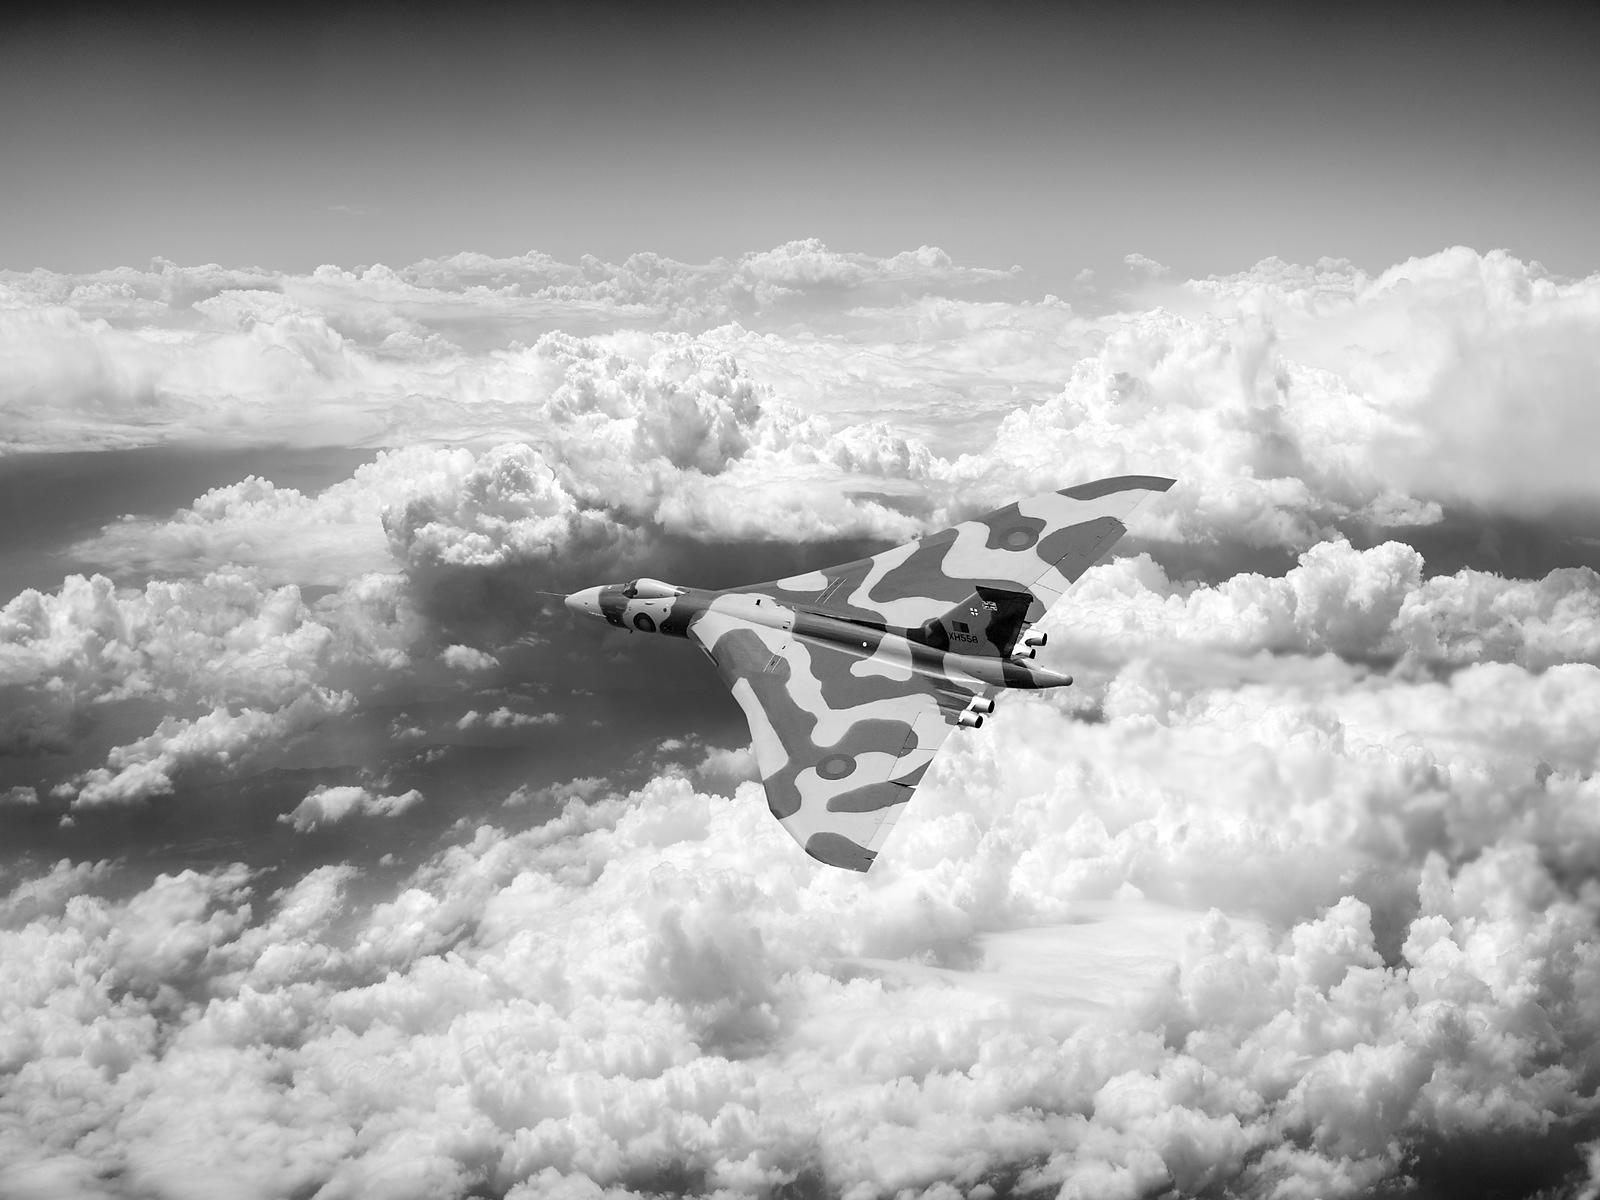 Vulcan above majestic clouds BW version